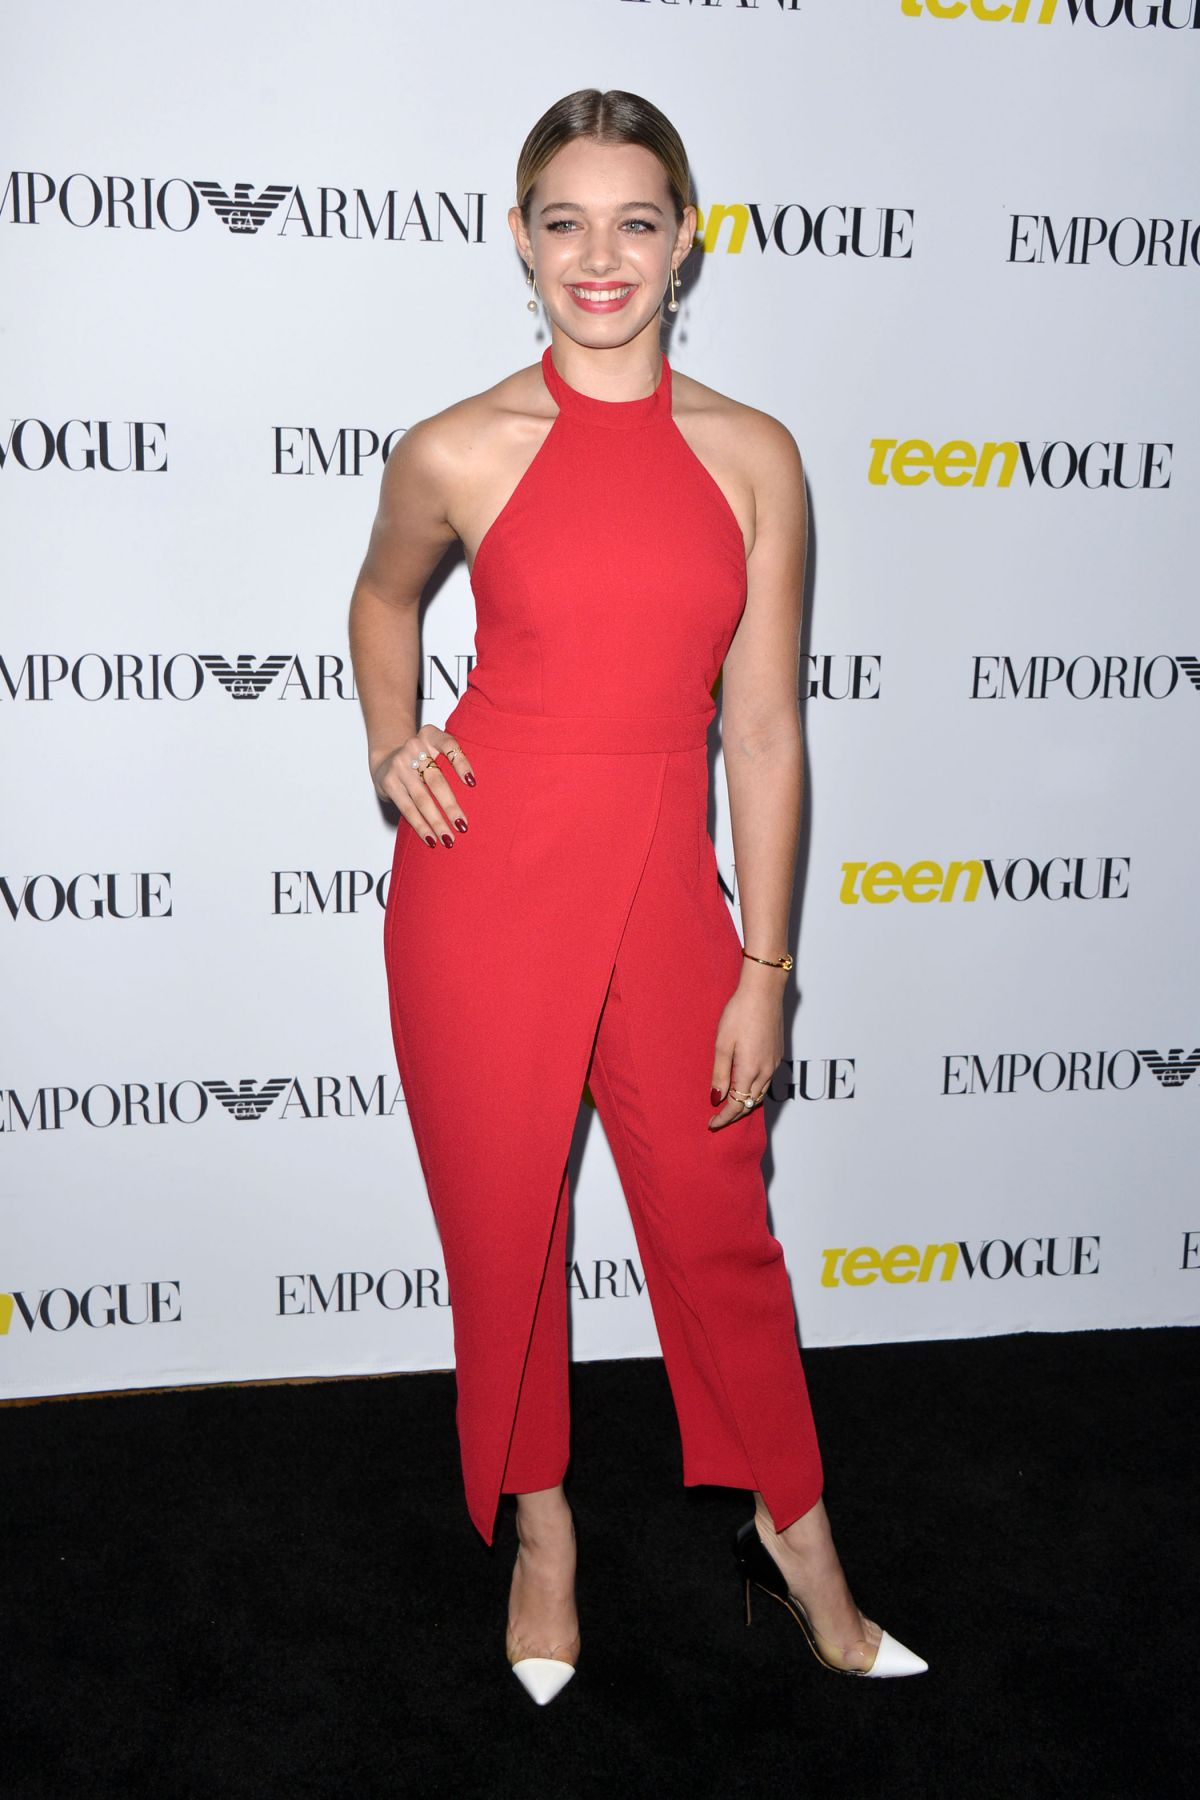 SADIE CALVANO at Teen Vogue's 13th Annual Young Hollywood Issue Launch Party in Los Angeles 10/02/2015